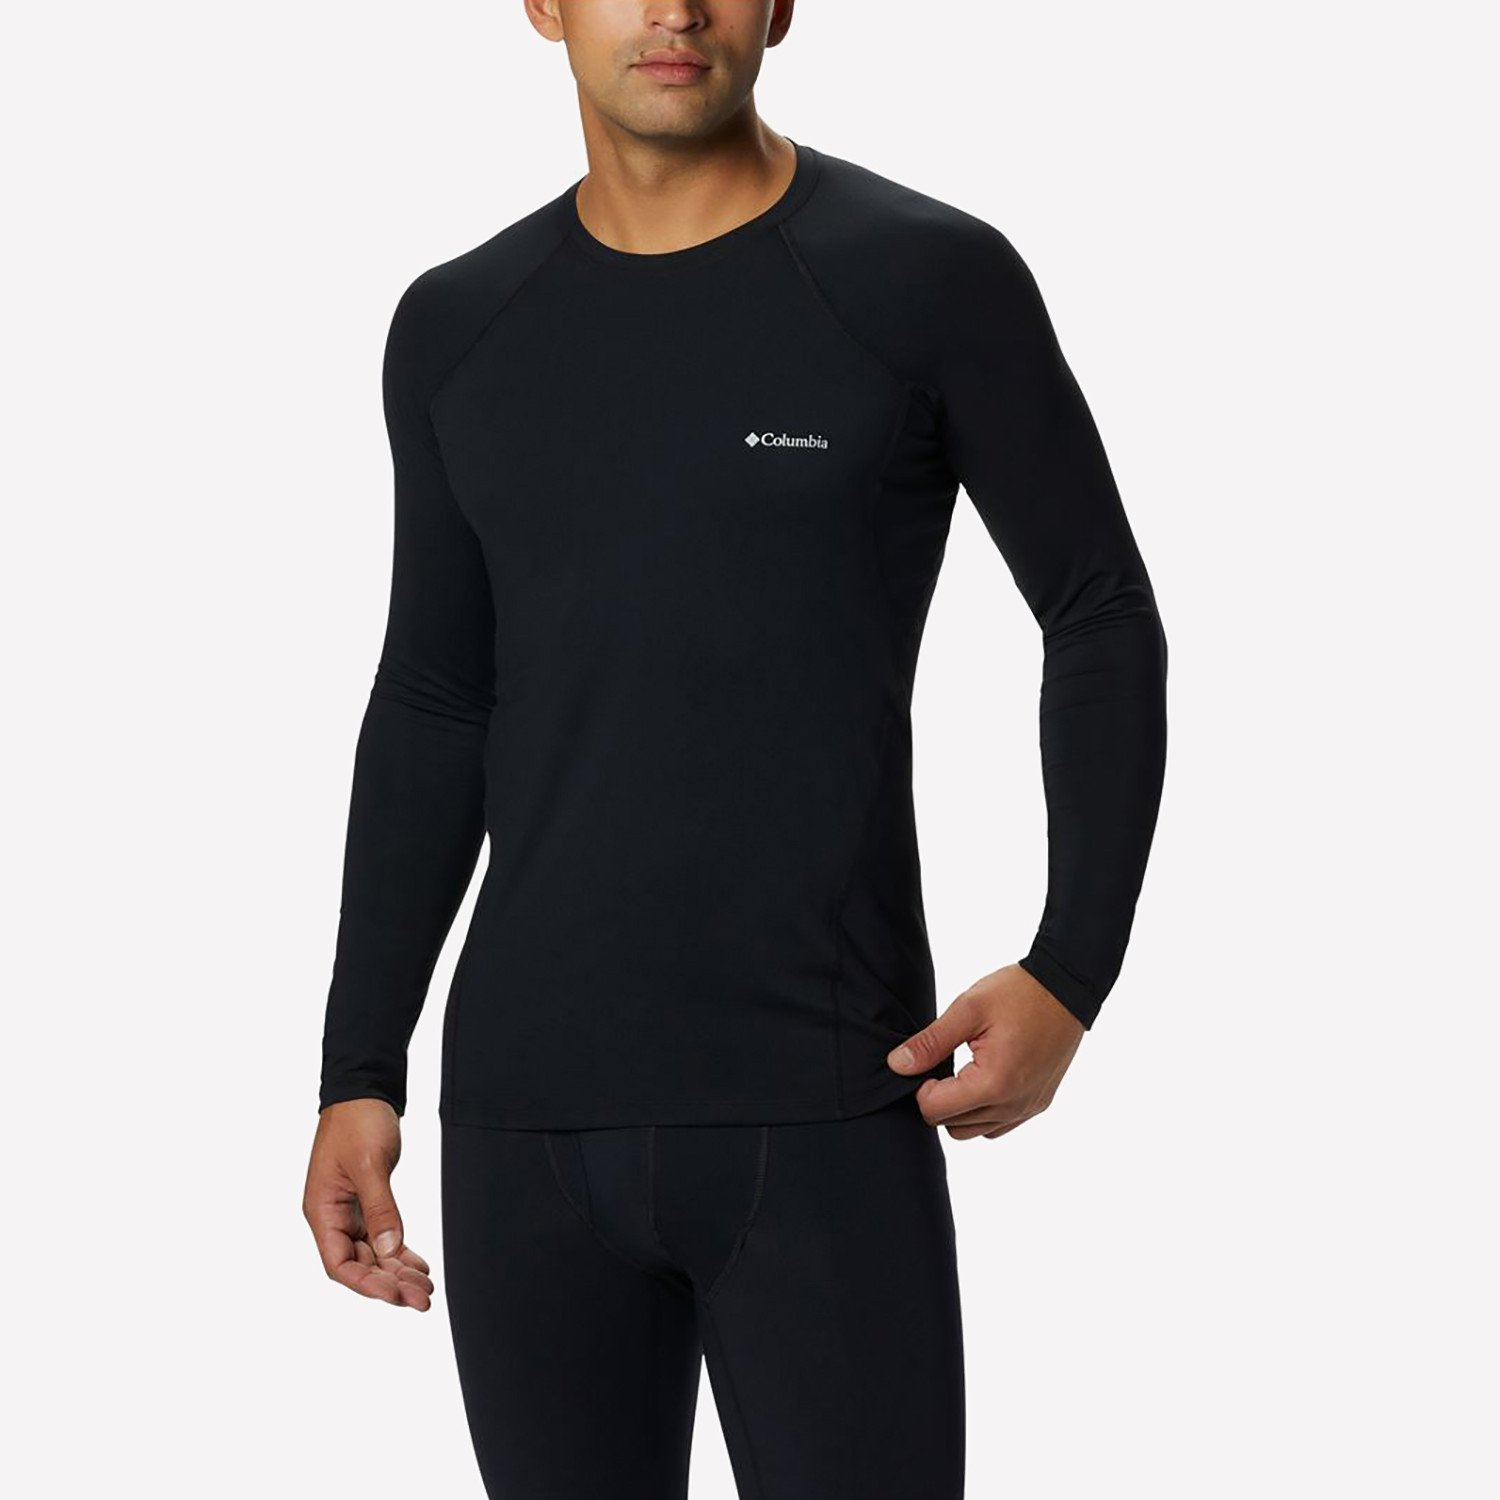 Columbia Midweight Stretch Long Sleeve Top Baselay (9000089590_1469)